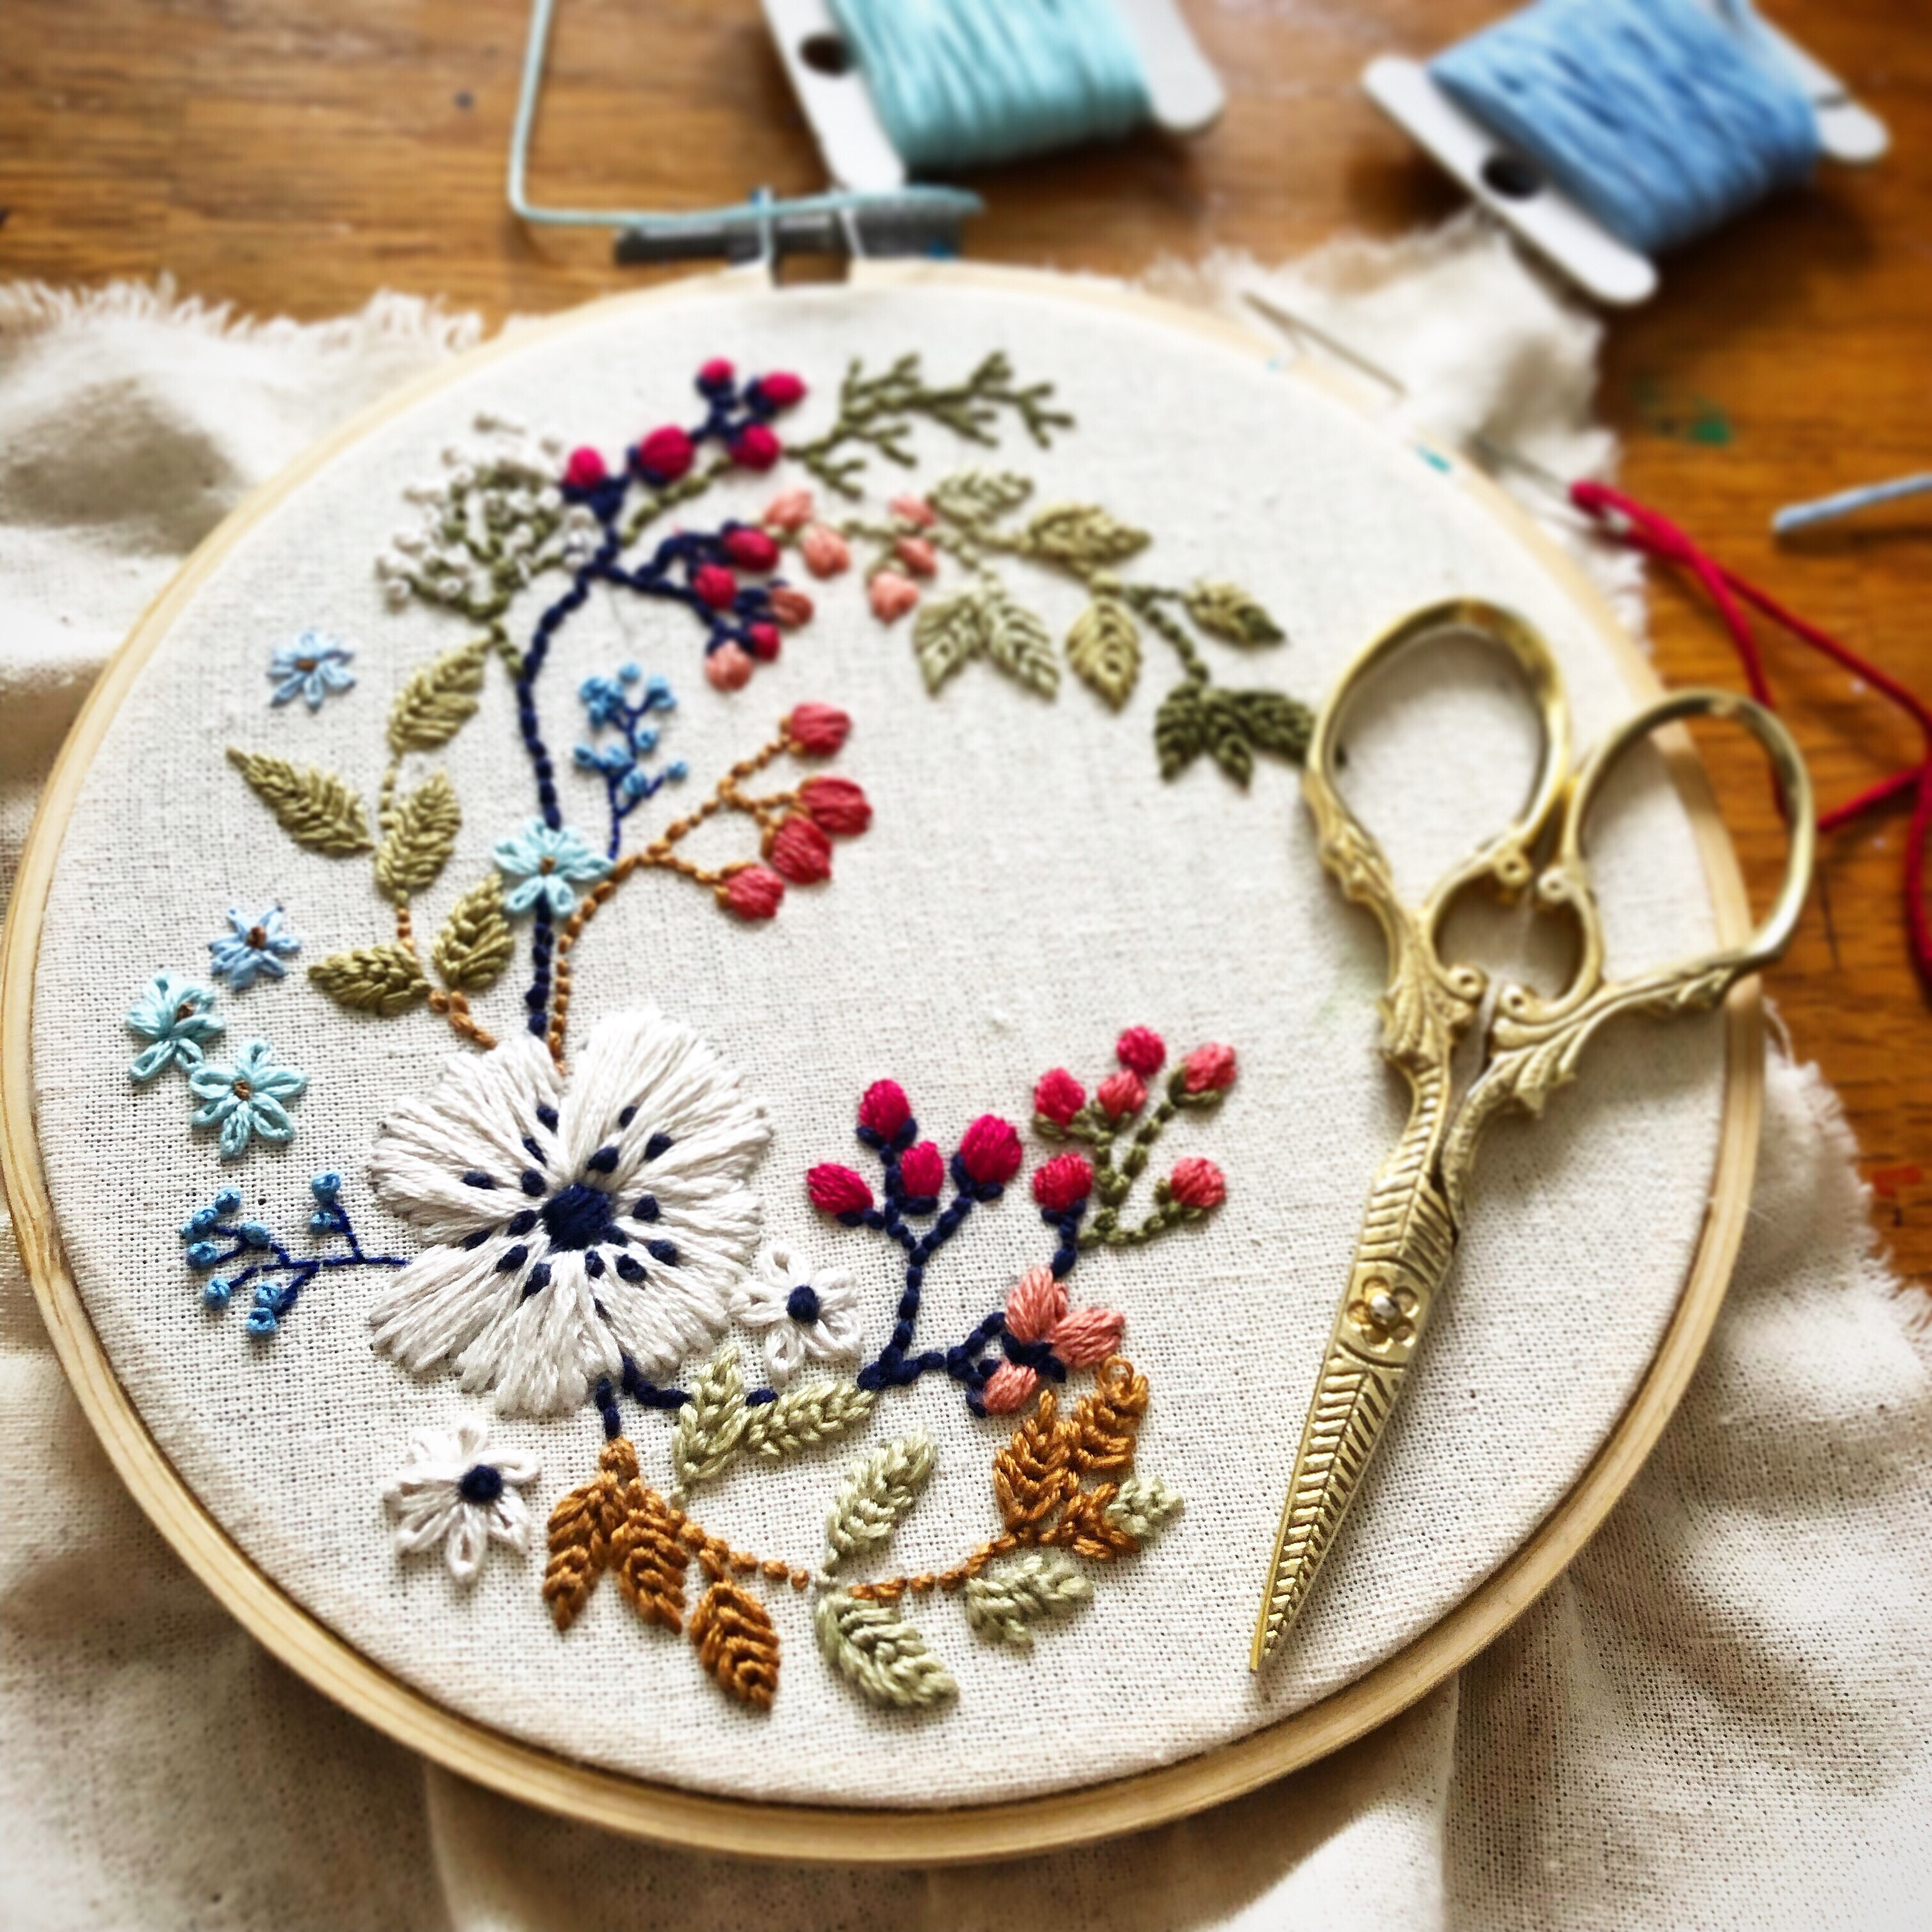 Photo of an embroidery hoop supporting a delicate pattern of flowers and berries, alongside decorative sewing scissors